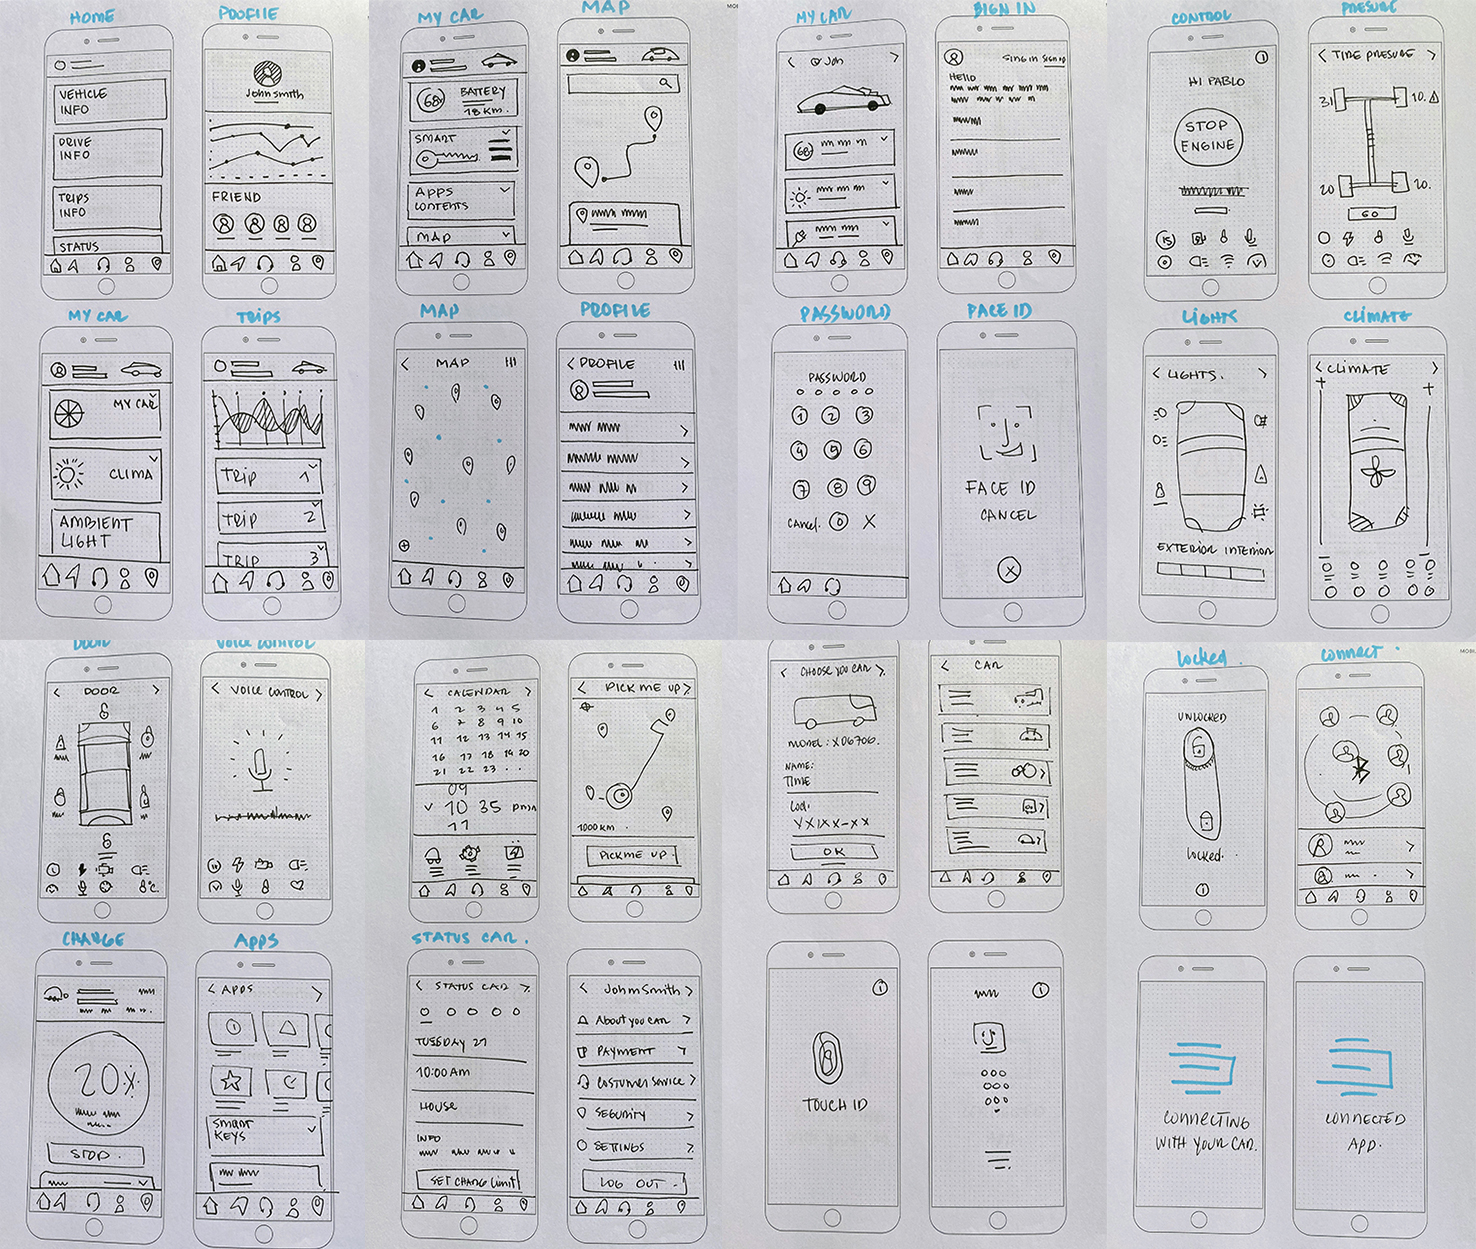 WIREFRAME copia